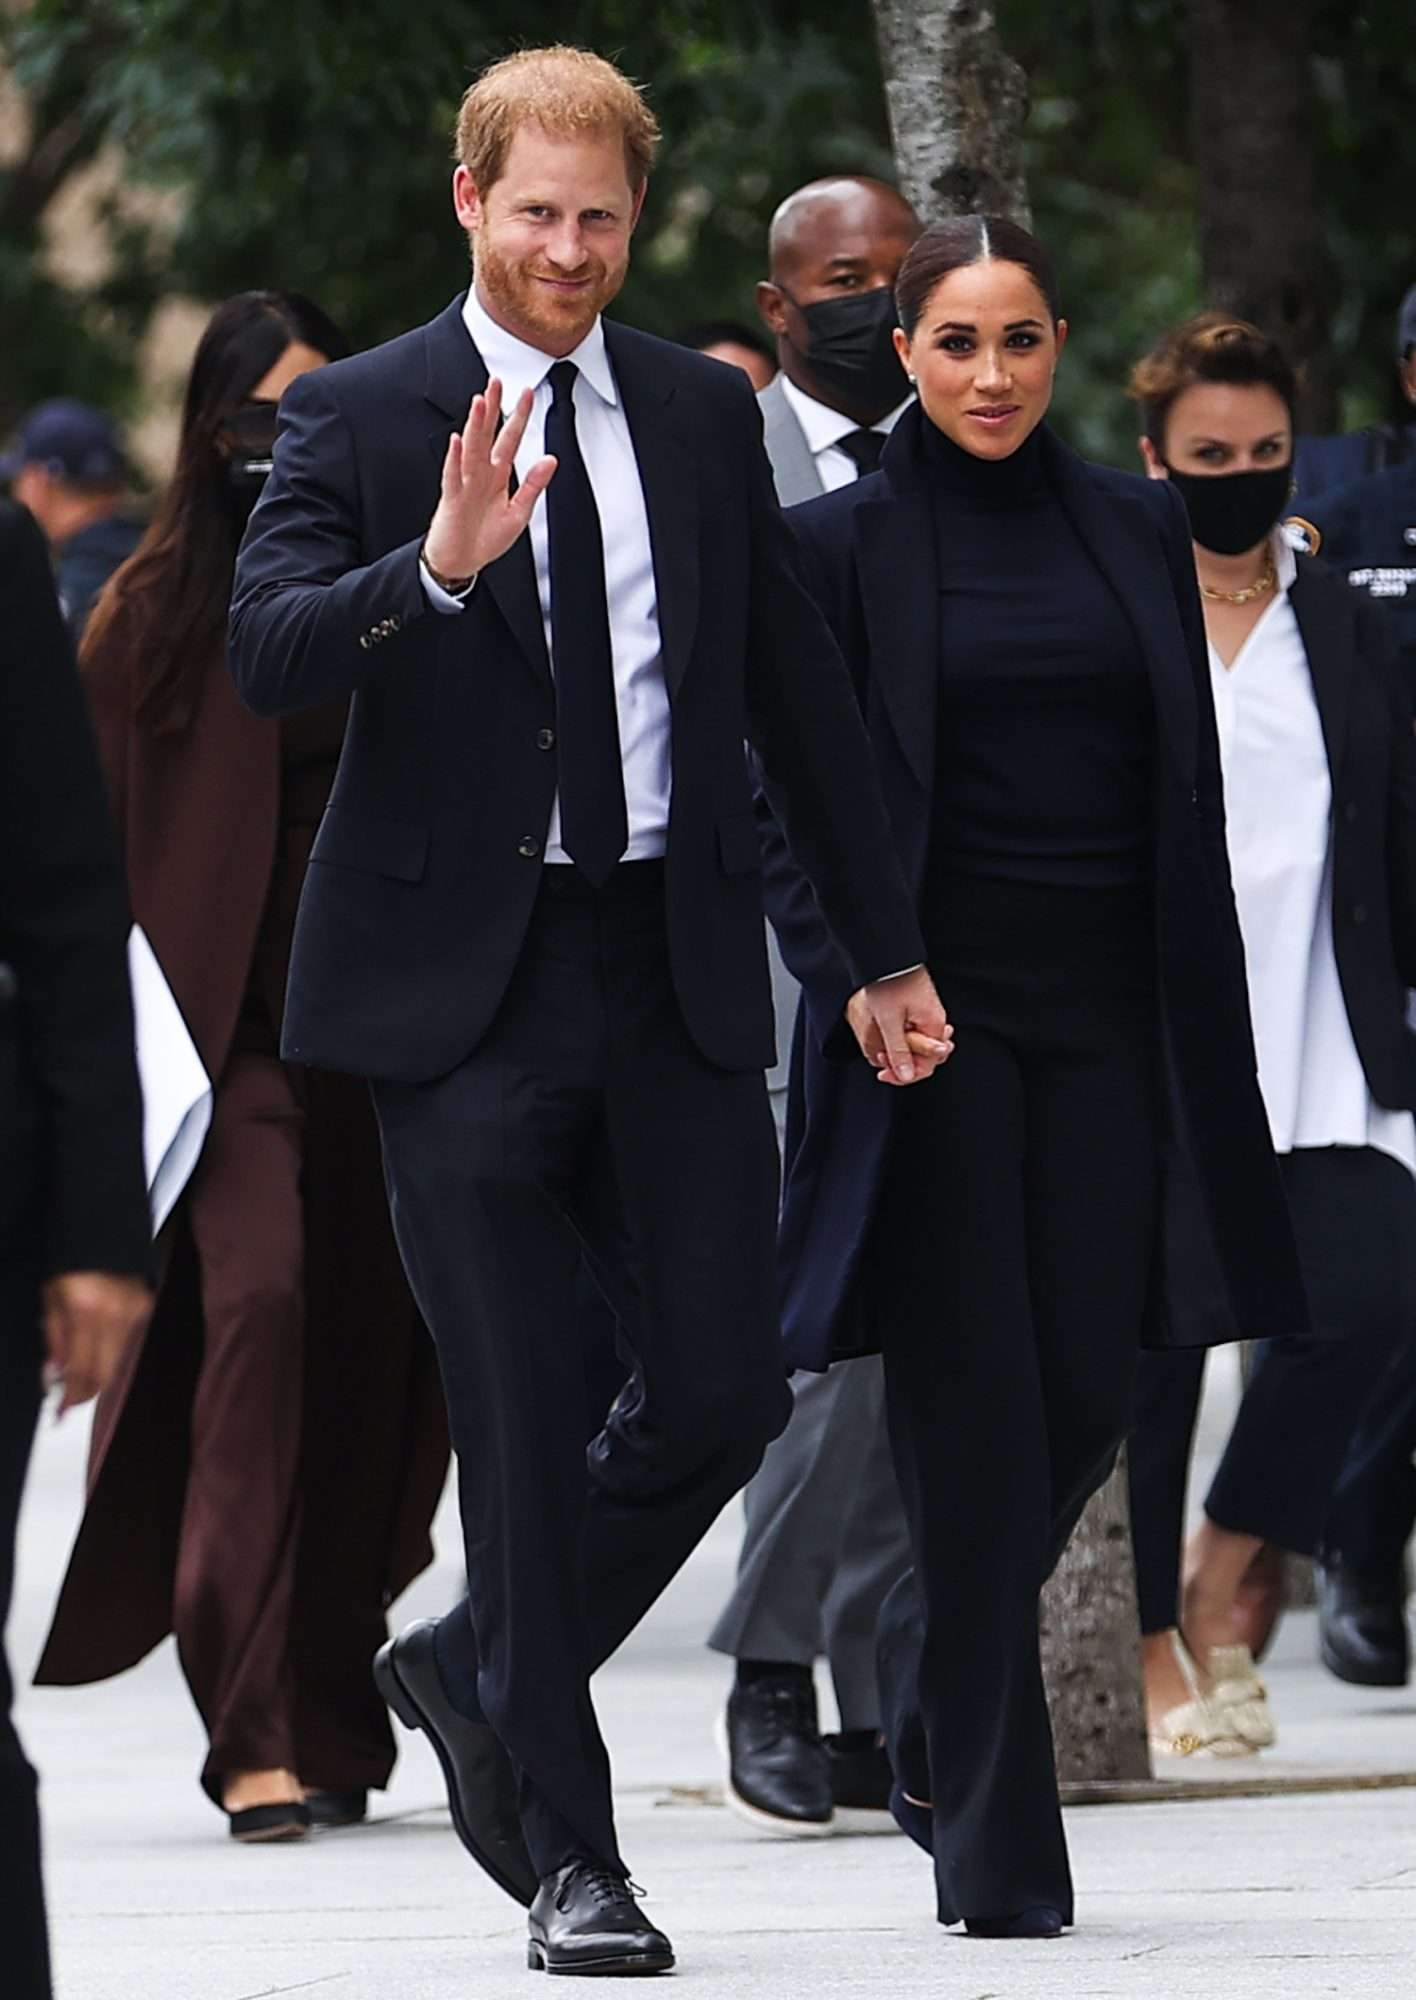 Prince Harry and Meghan Markle visit the One World Observatory